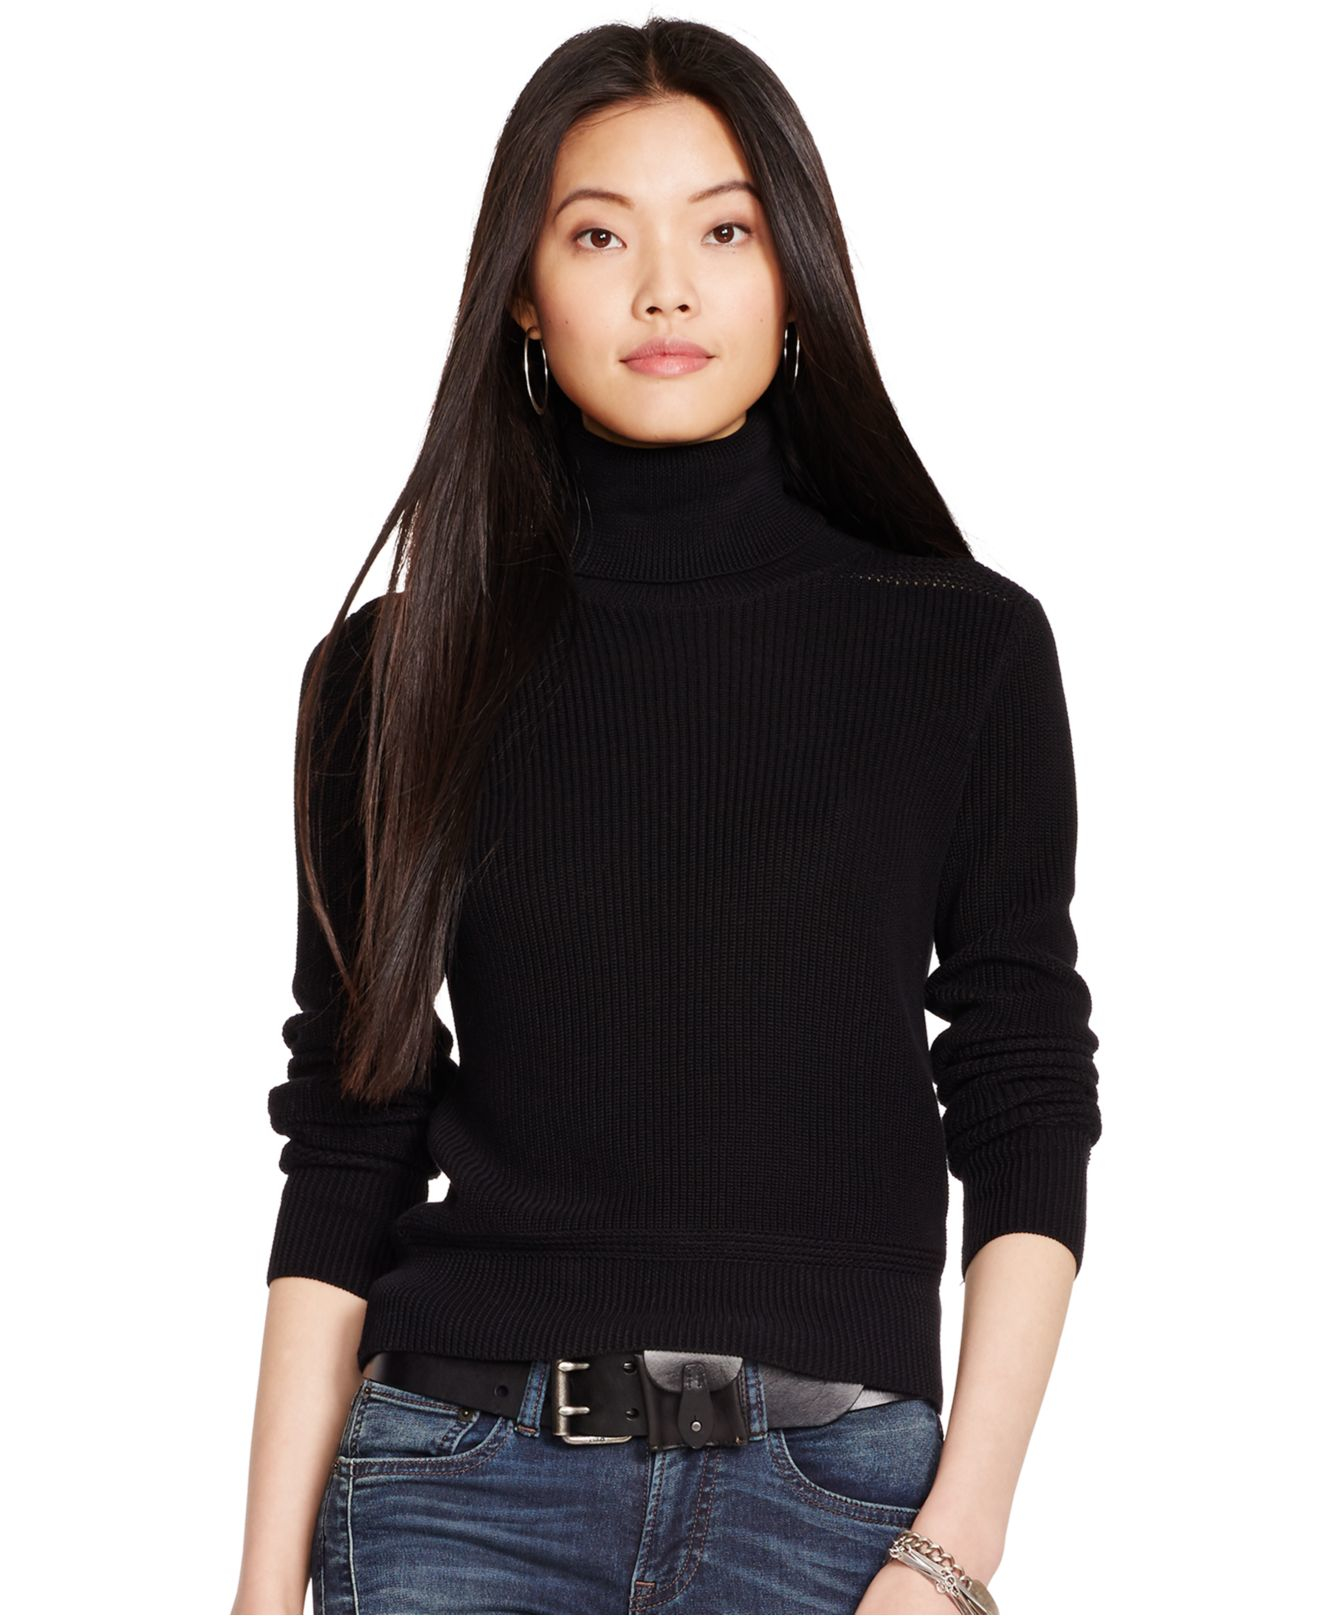 Polo ralph lauren Cotton Turtleneck Sweater in Black | Lyst